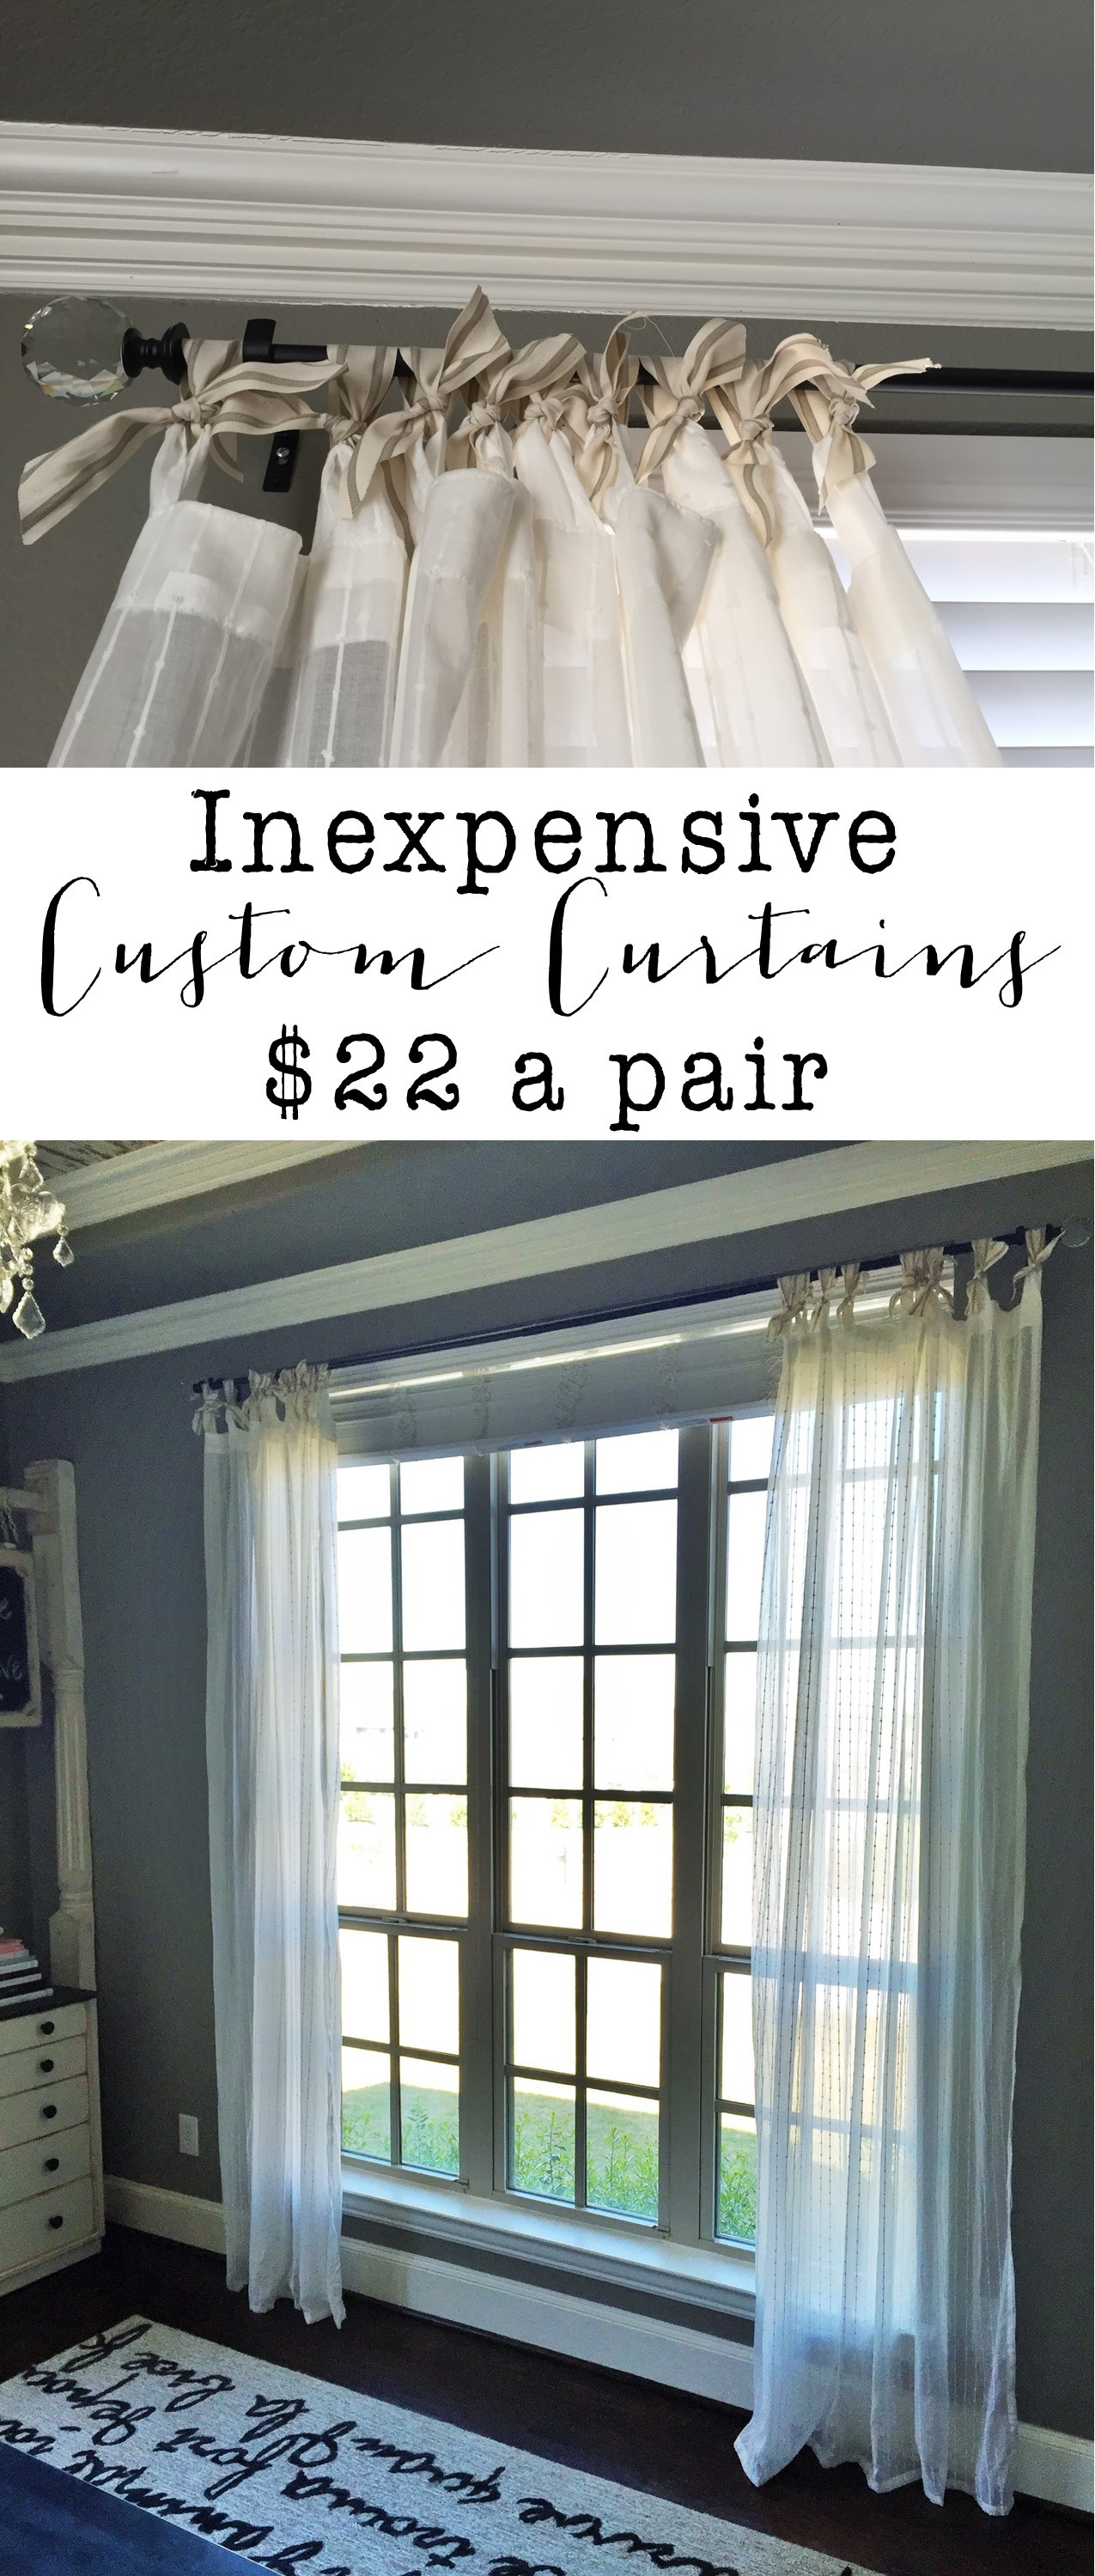 be sure to pin this photo for later so you can make your own inexpensive custom curtains